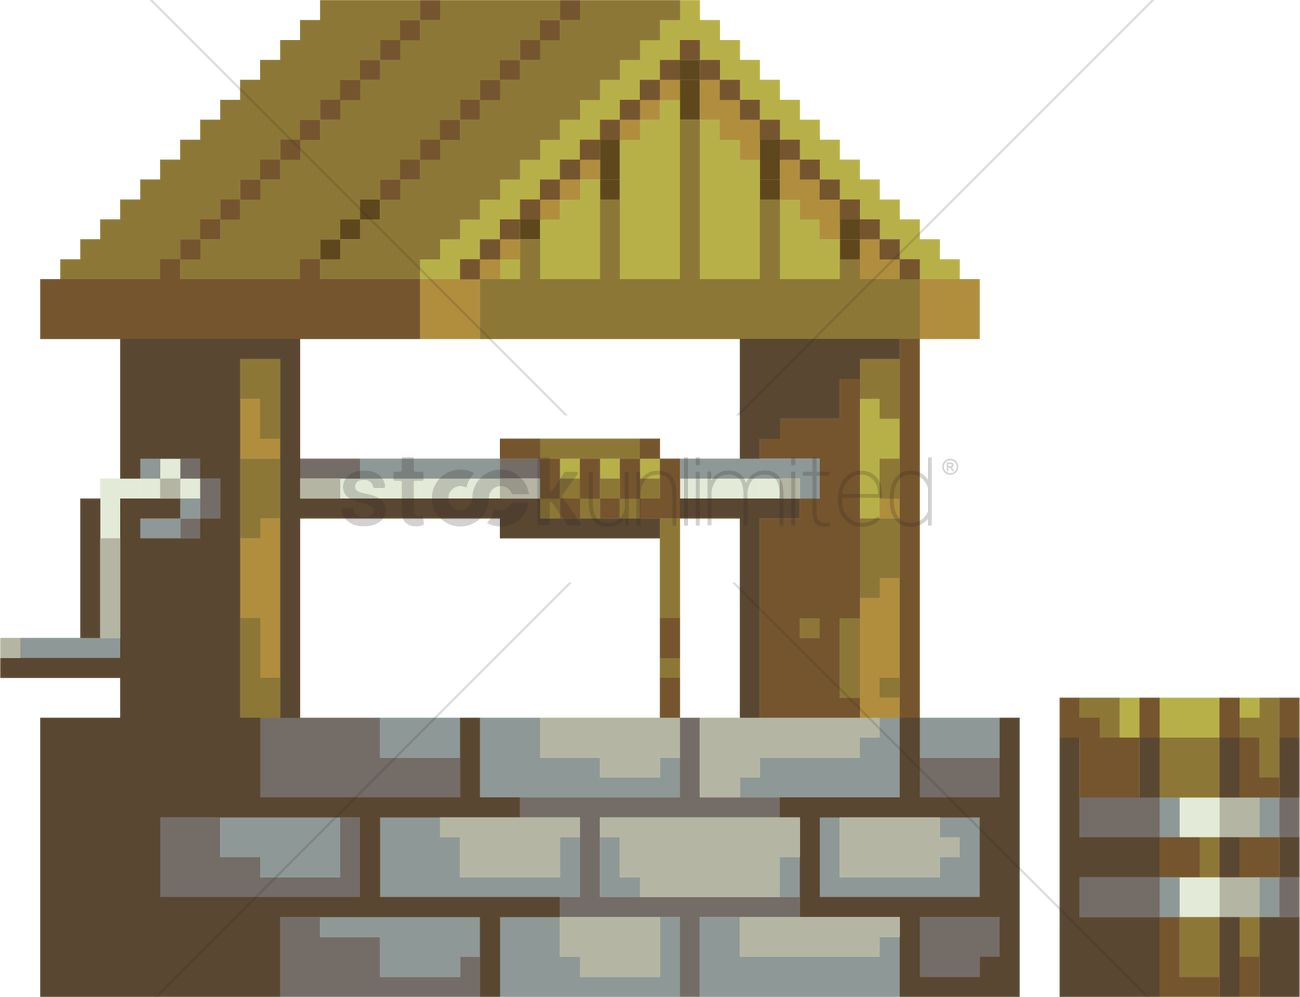 1300x997 Pixel Water Well Vector Image